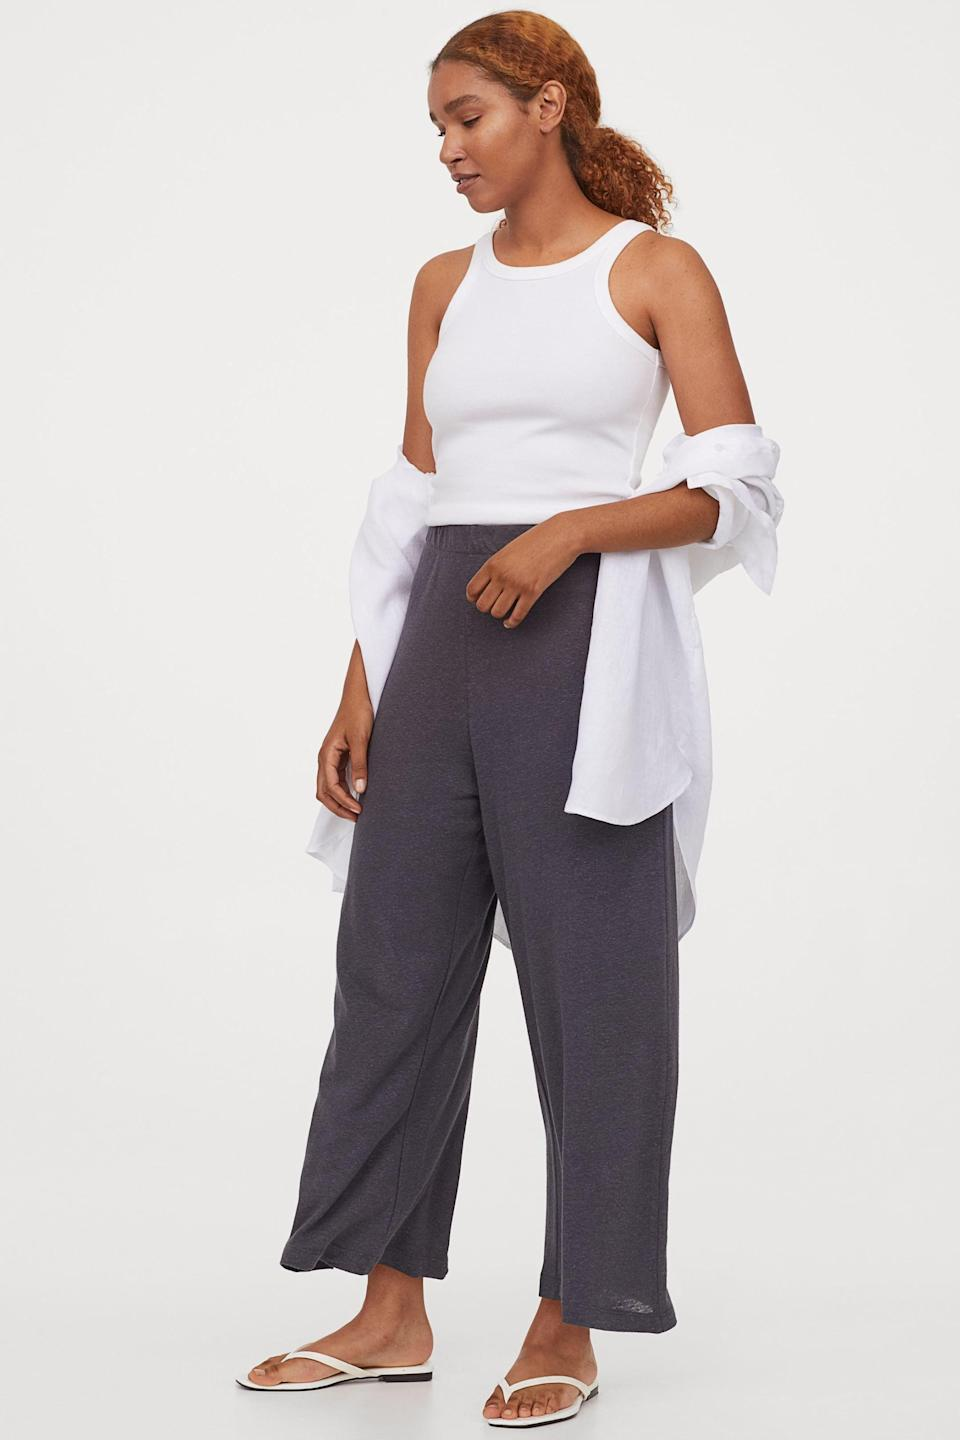 <p>For days you just want to lounge, get these comfy <span>H&amp;M Wide-cut Jersey Pants</span> ($25).</p>